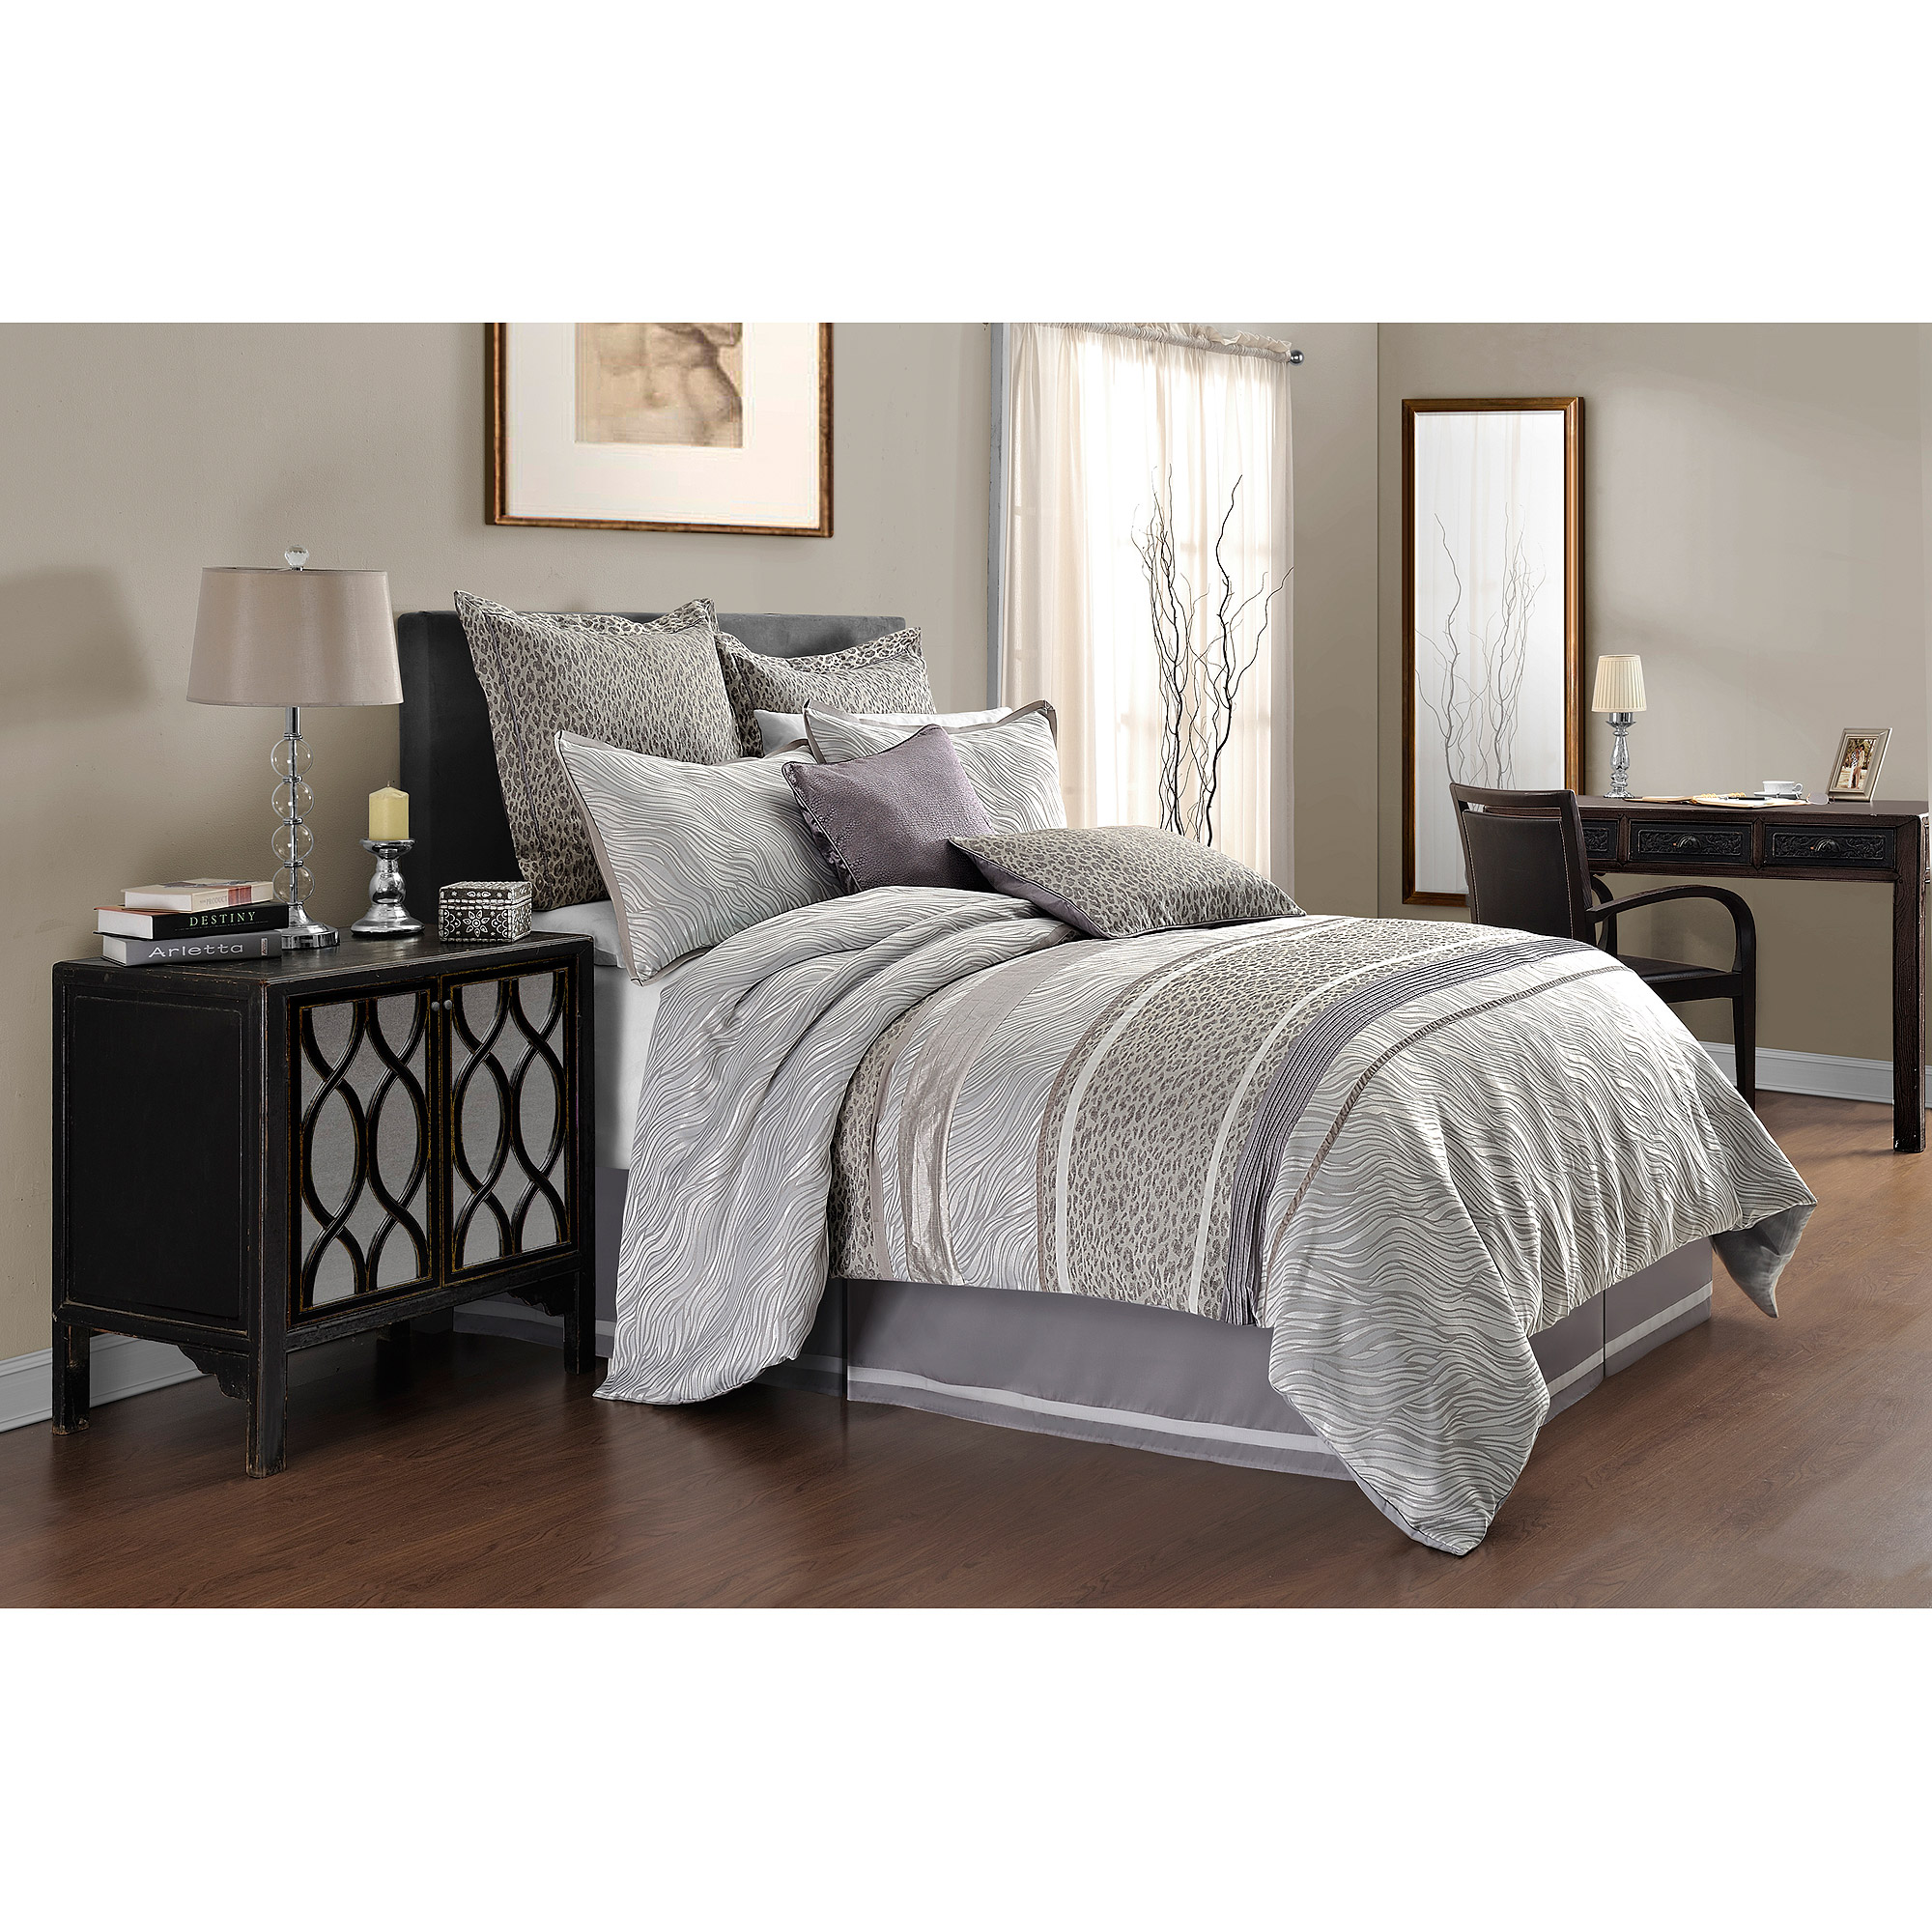 Image of Adorn Home Vienna 4-Piece Bedding Comforter Set